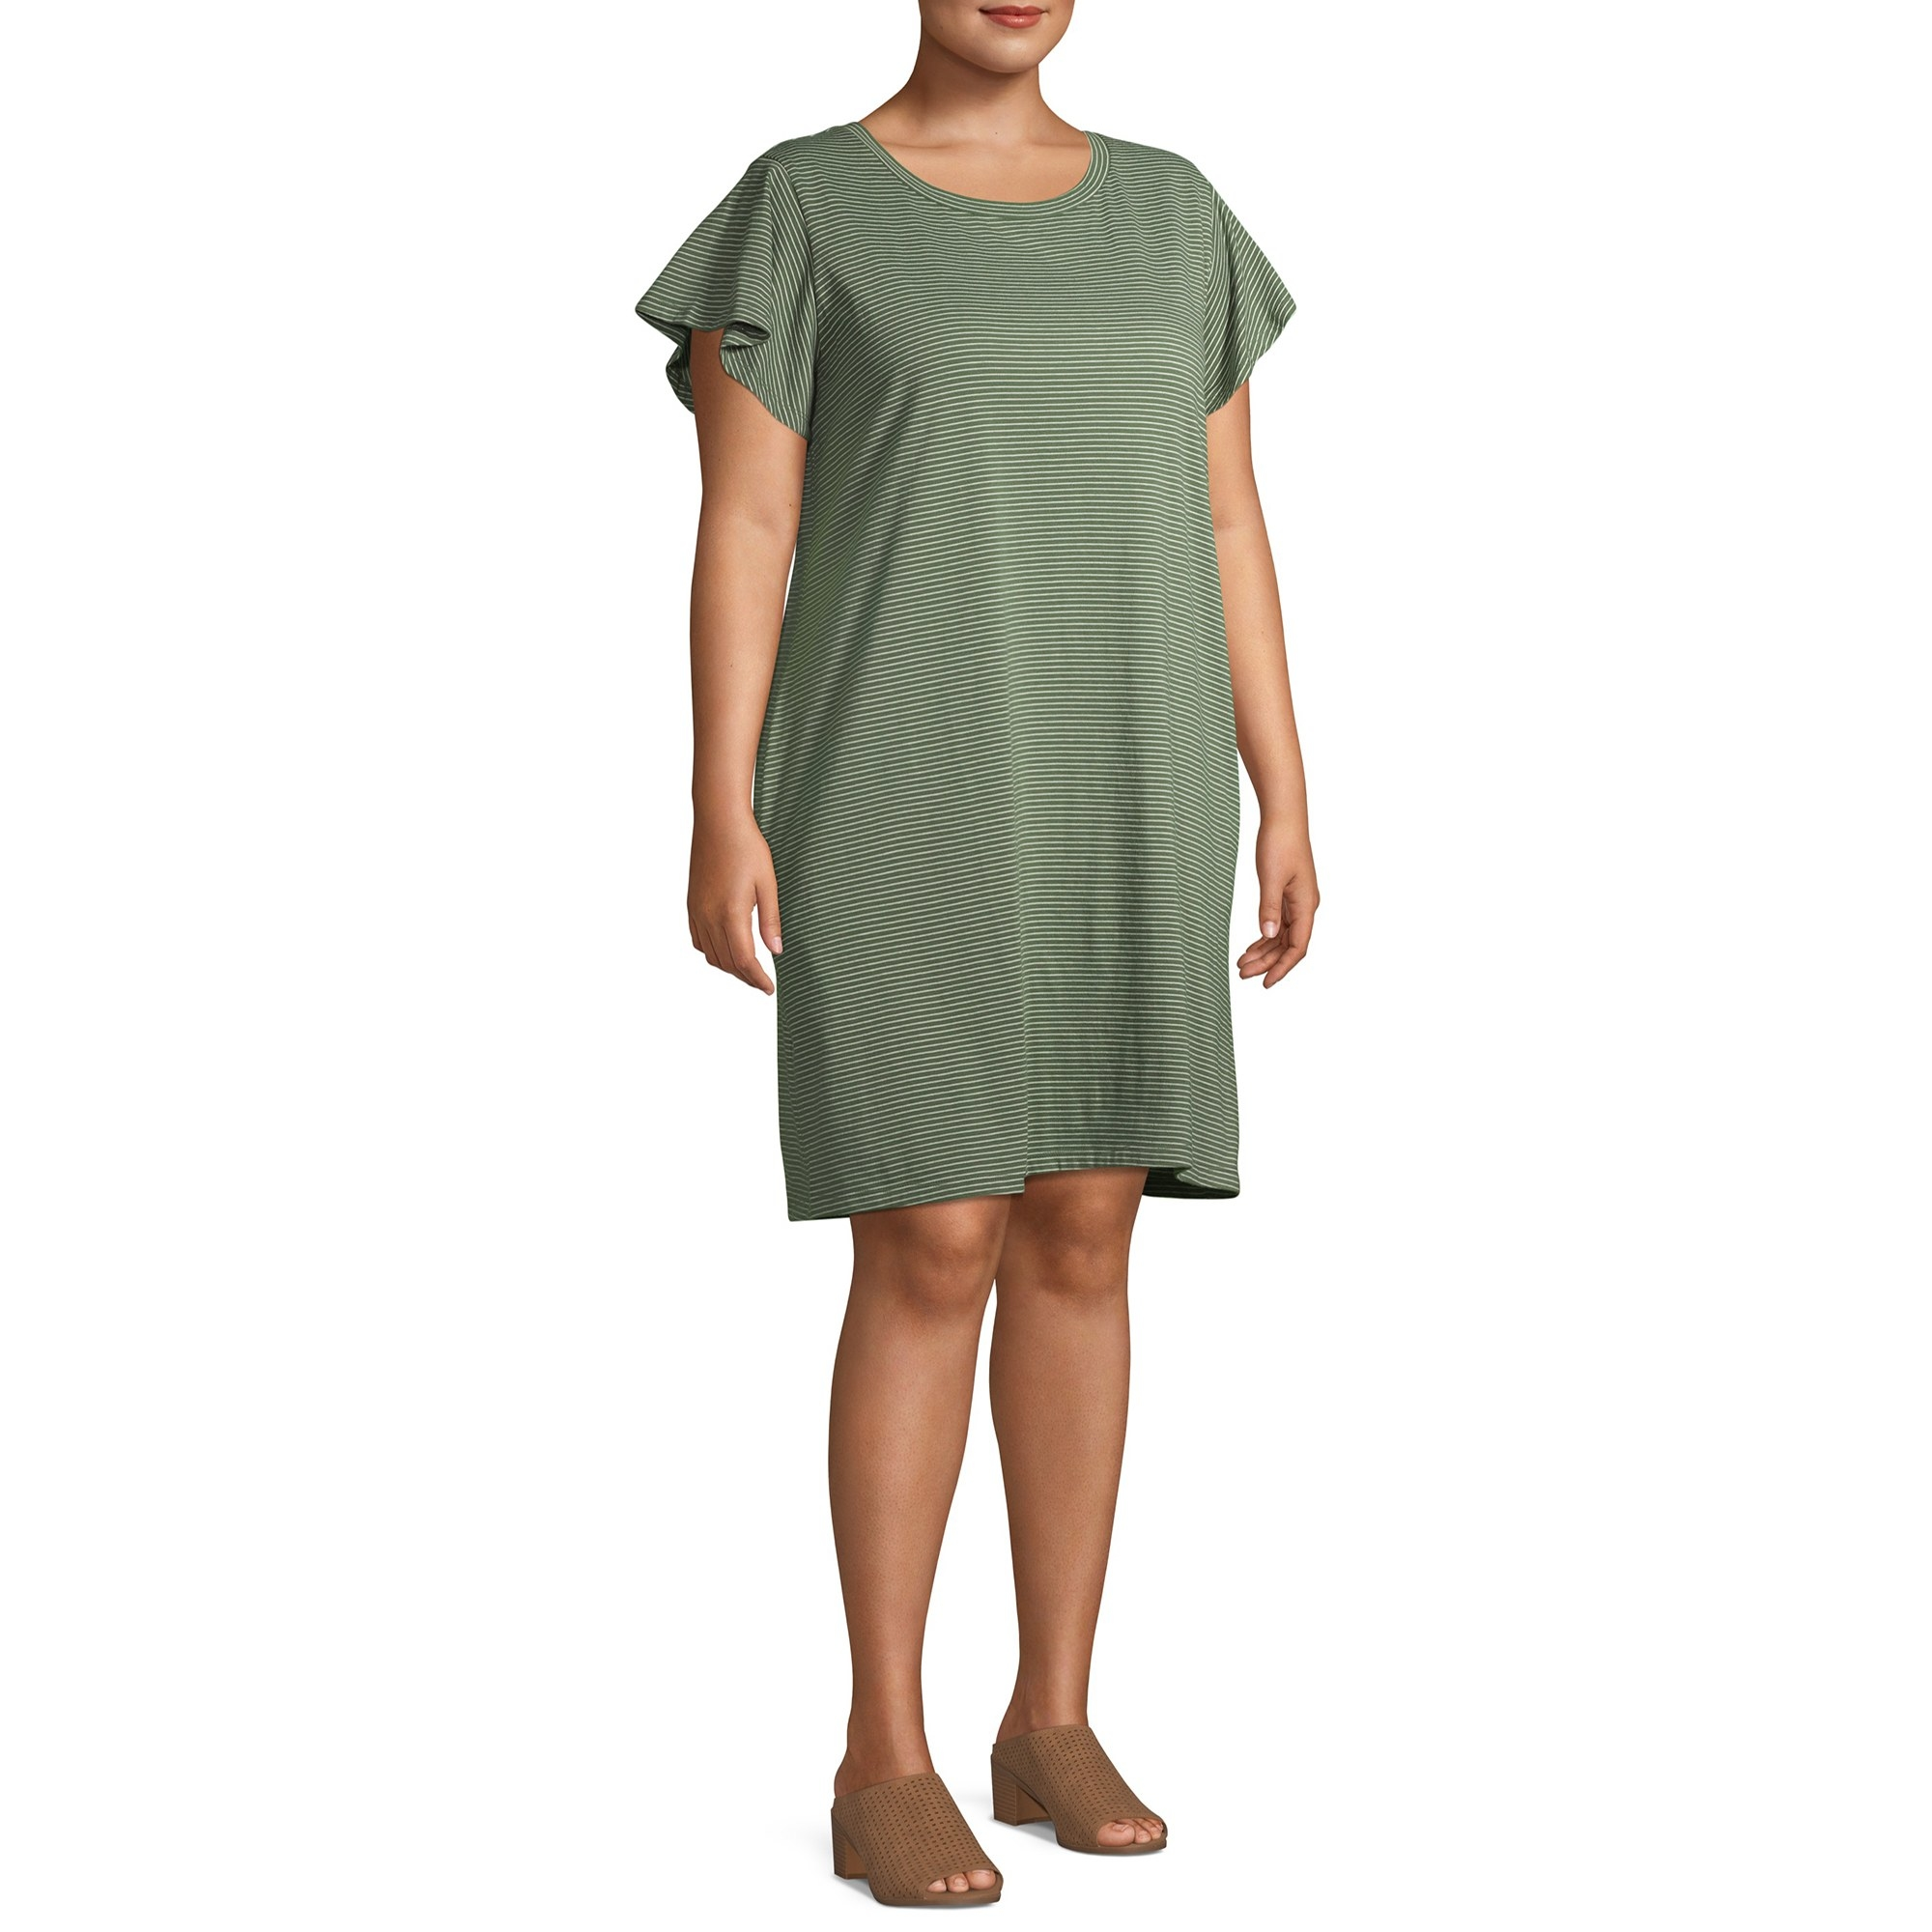 The olive green T-shirt dress with ruffled sleeves